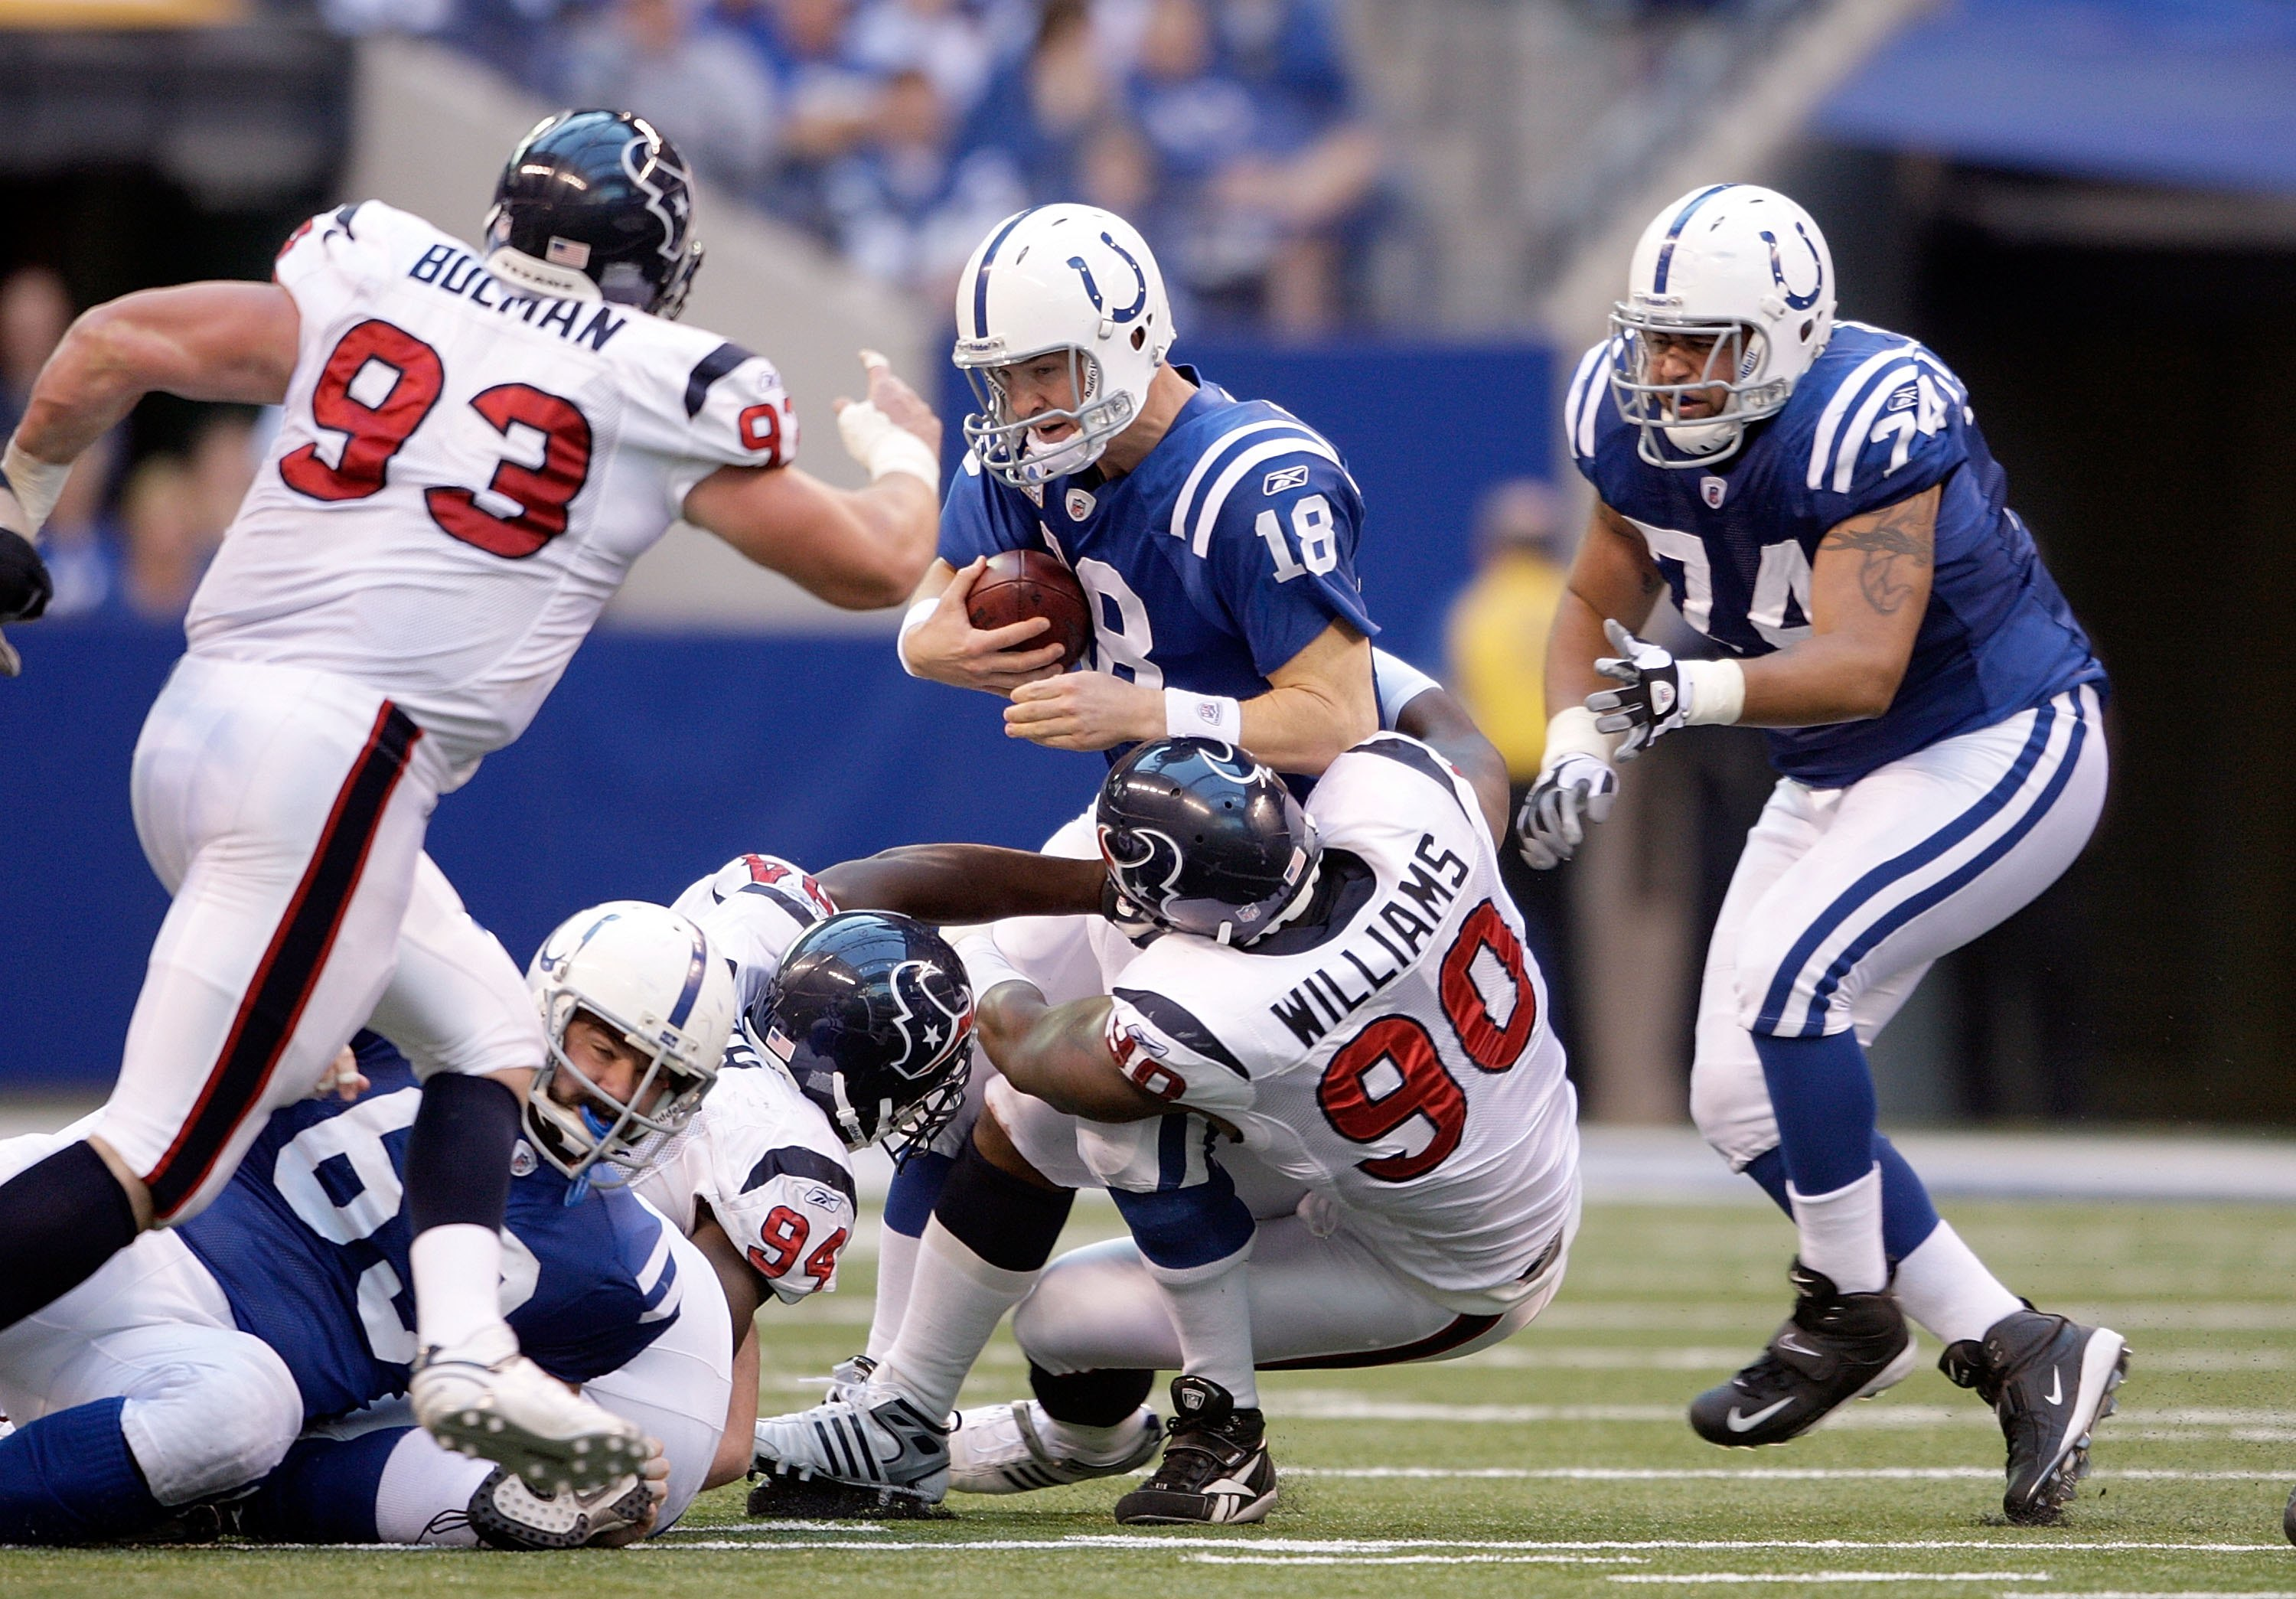 INDIANAPOLIS - NOVEMBER 8:  Peyton Manning #18 of the Indianapolis Colts is sacked by Mario Williams #90 the Houston Texans at Lucas Oil Stadium on November 8, 2009 in Indianapolis, Indiana.  The Colts defeated the Texans 20-17.  (Photo by Andy Lyons/Gett